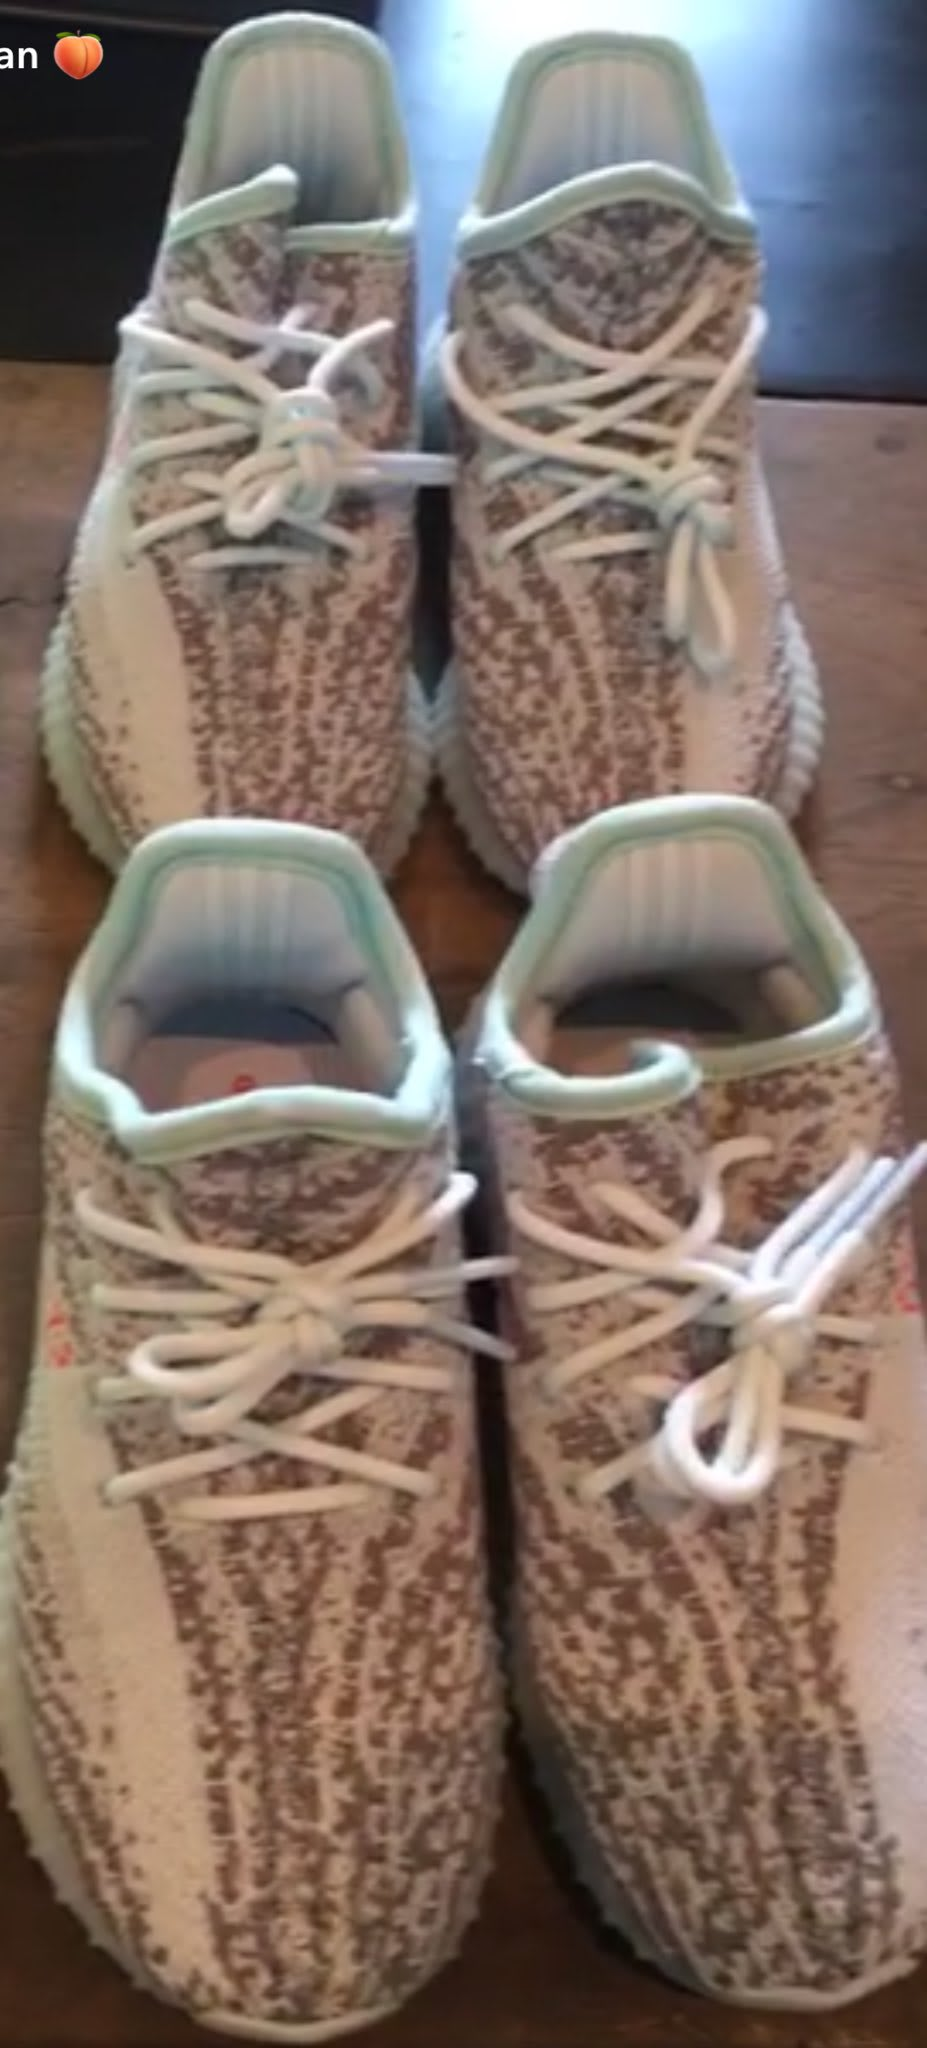 North Saint West adidas Yeezy Boost 350 V2 Semi Frozen Yellow Blue Tint